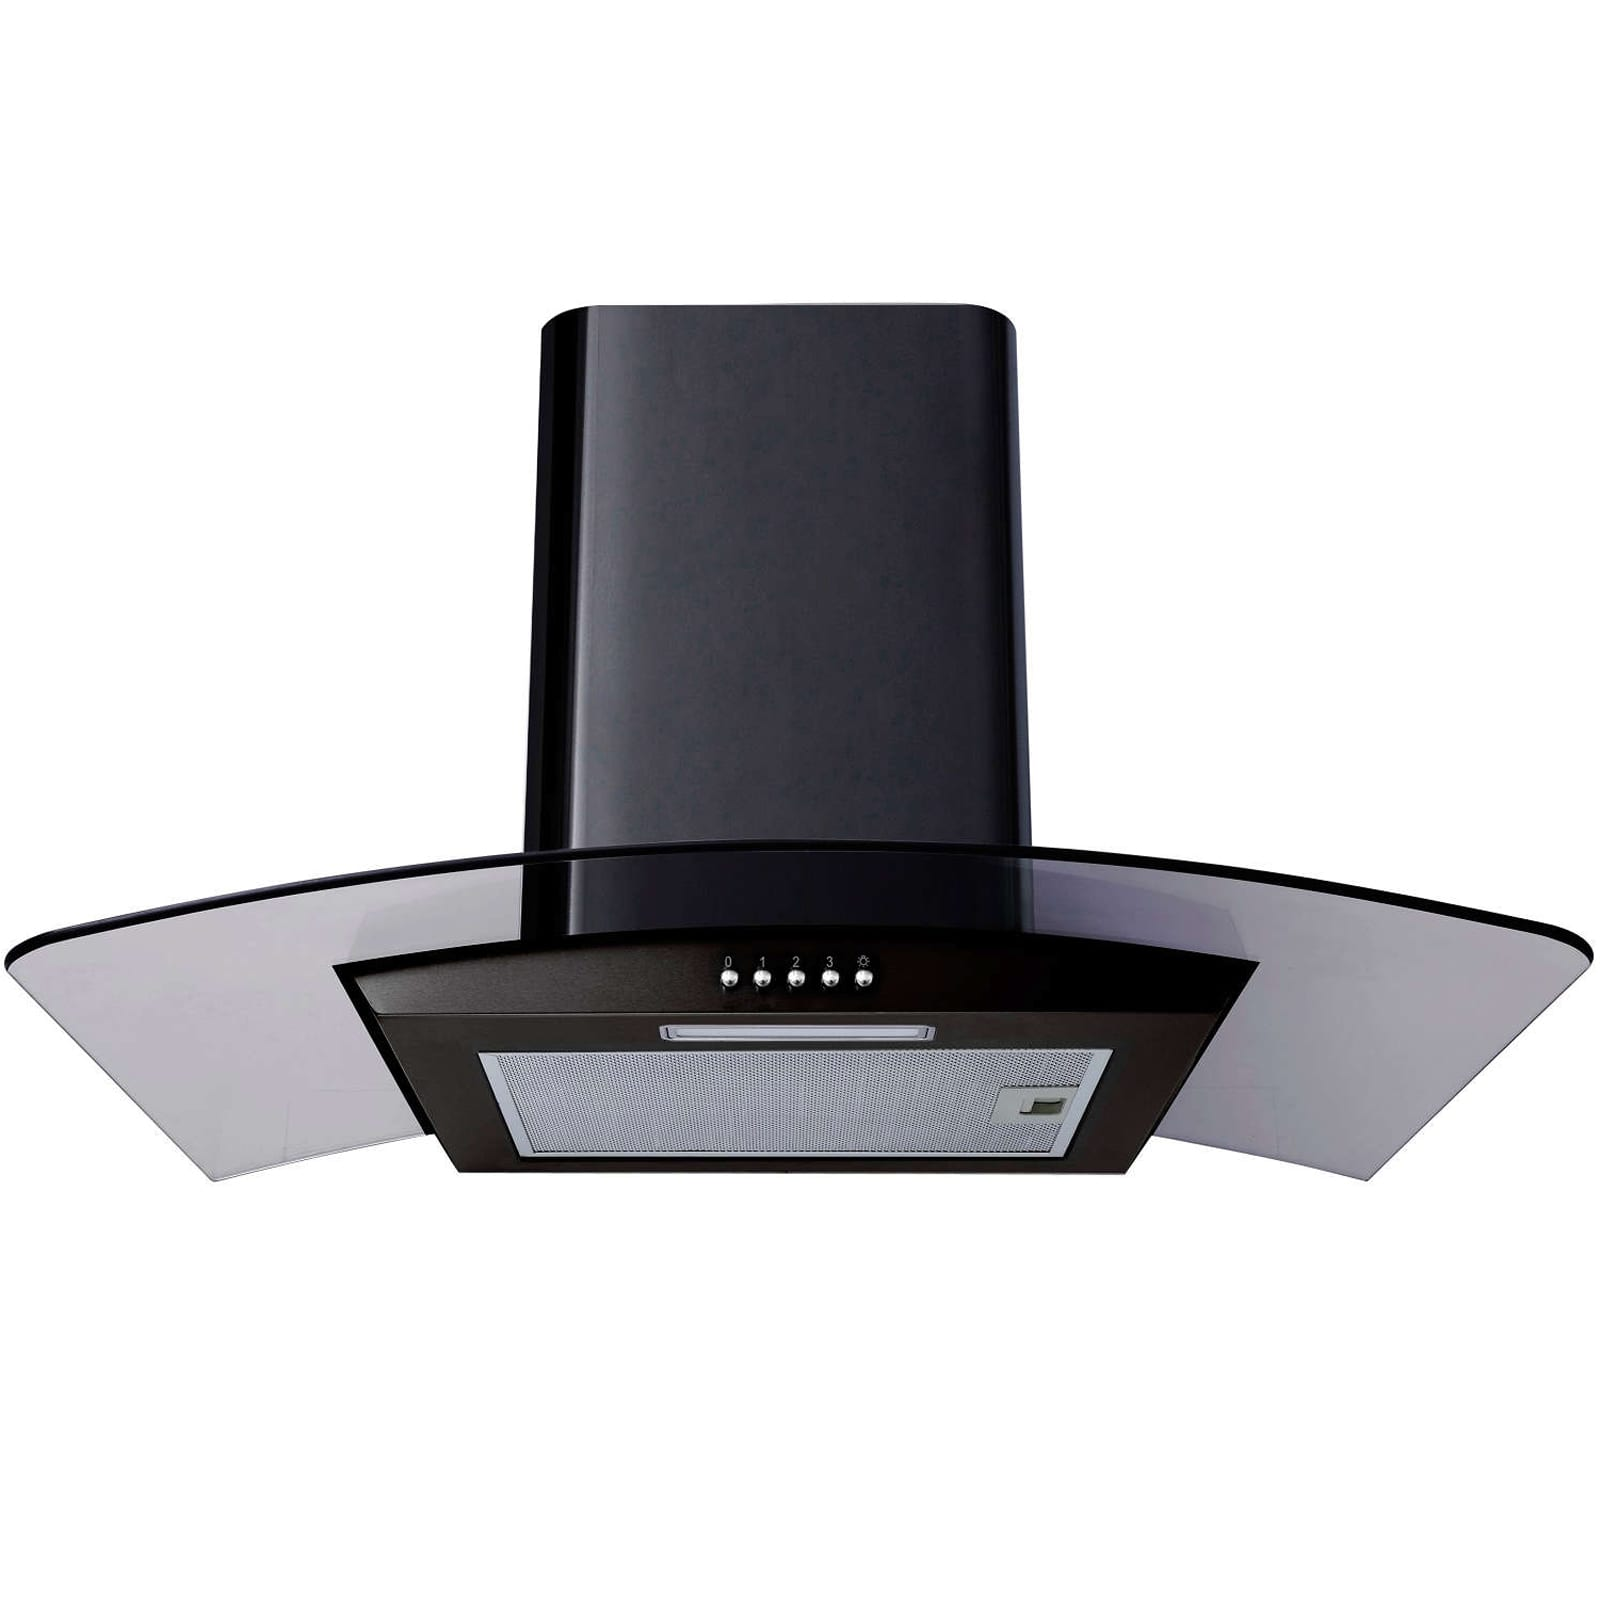 Sia 60cm double electric oven 70cm black glass gas hob chimney cooker hood